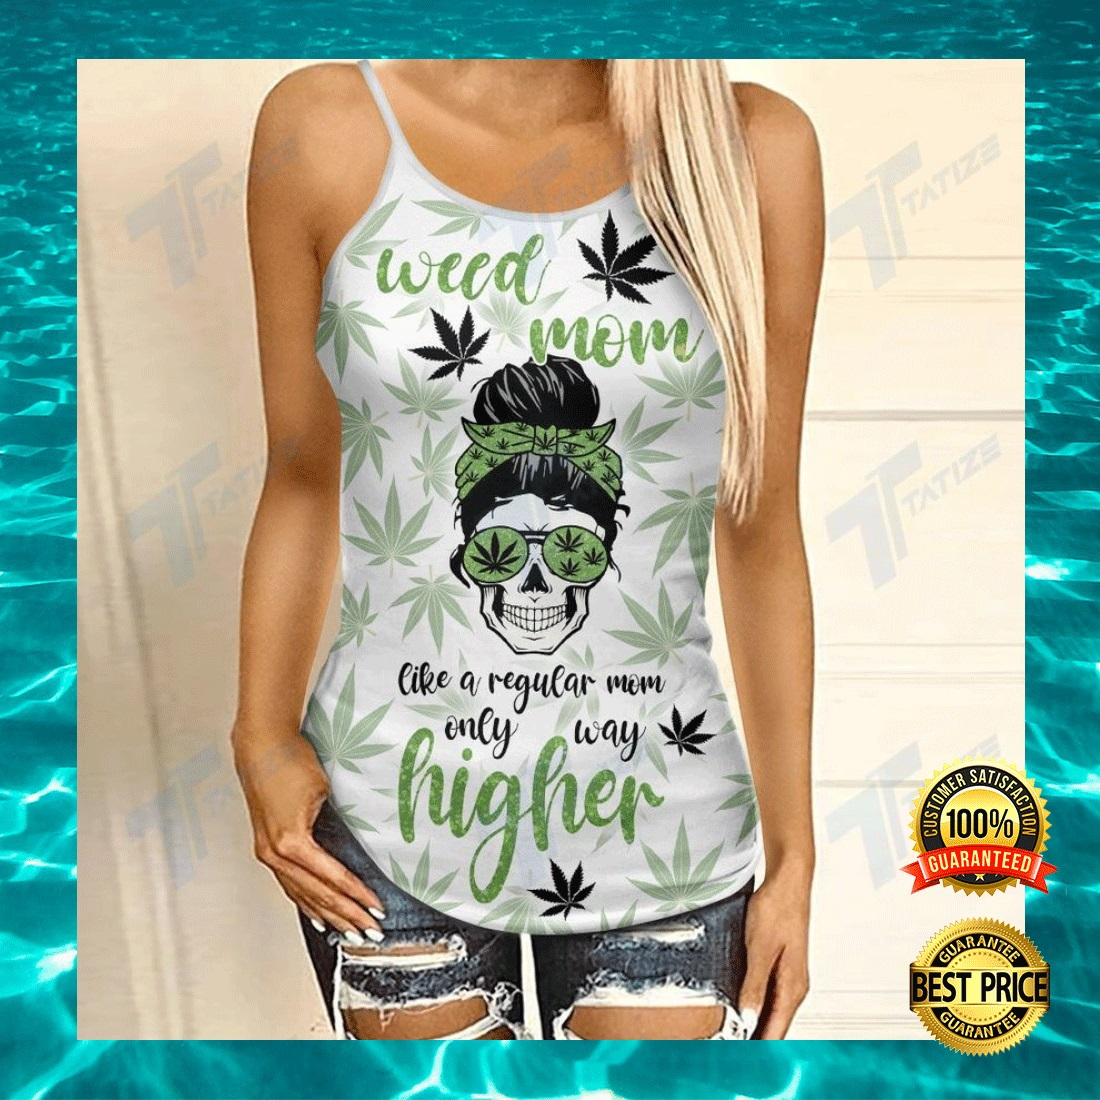 WEED MOM LIKE A REGULAR MOM ONLY WAY HIGHER CRISS-CROSS TANK TOP 7